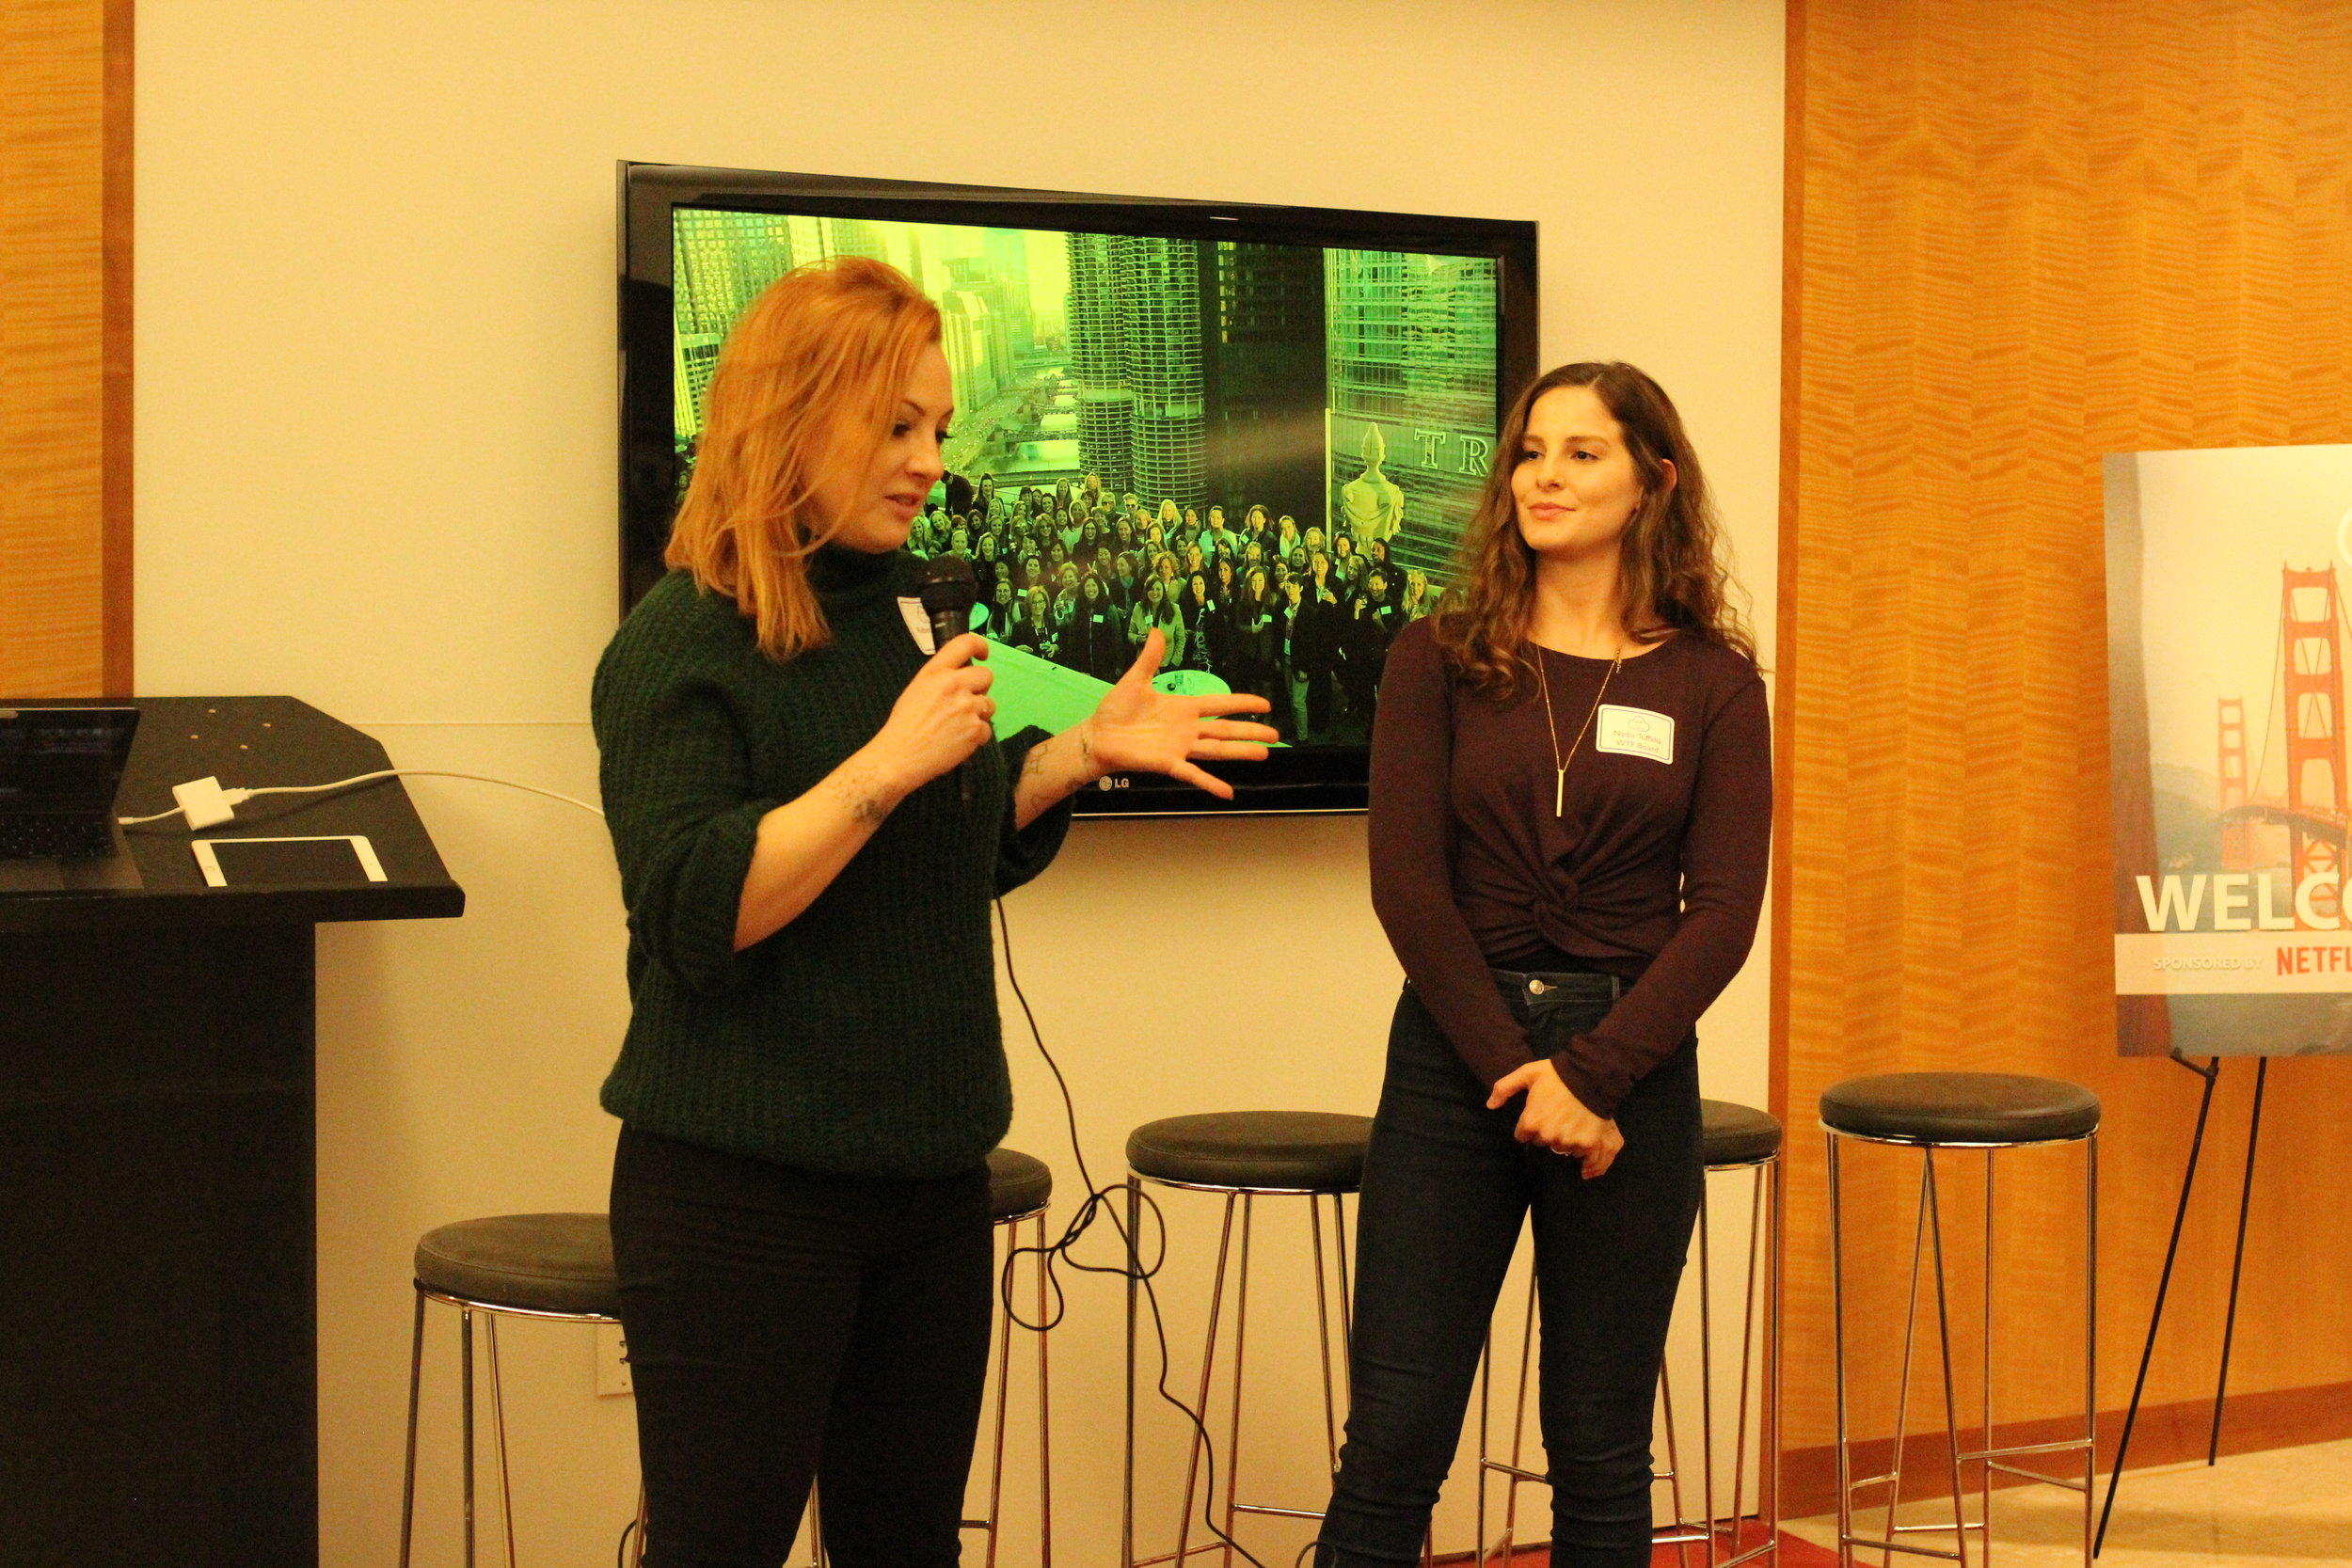 Rebecca Stanic speaking at the WTF NANOG 75 event with Nadia Tuffaha looking on in admiration.